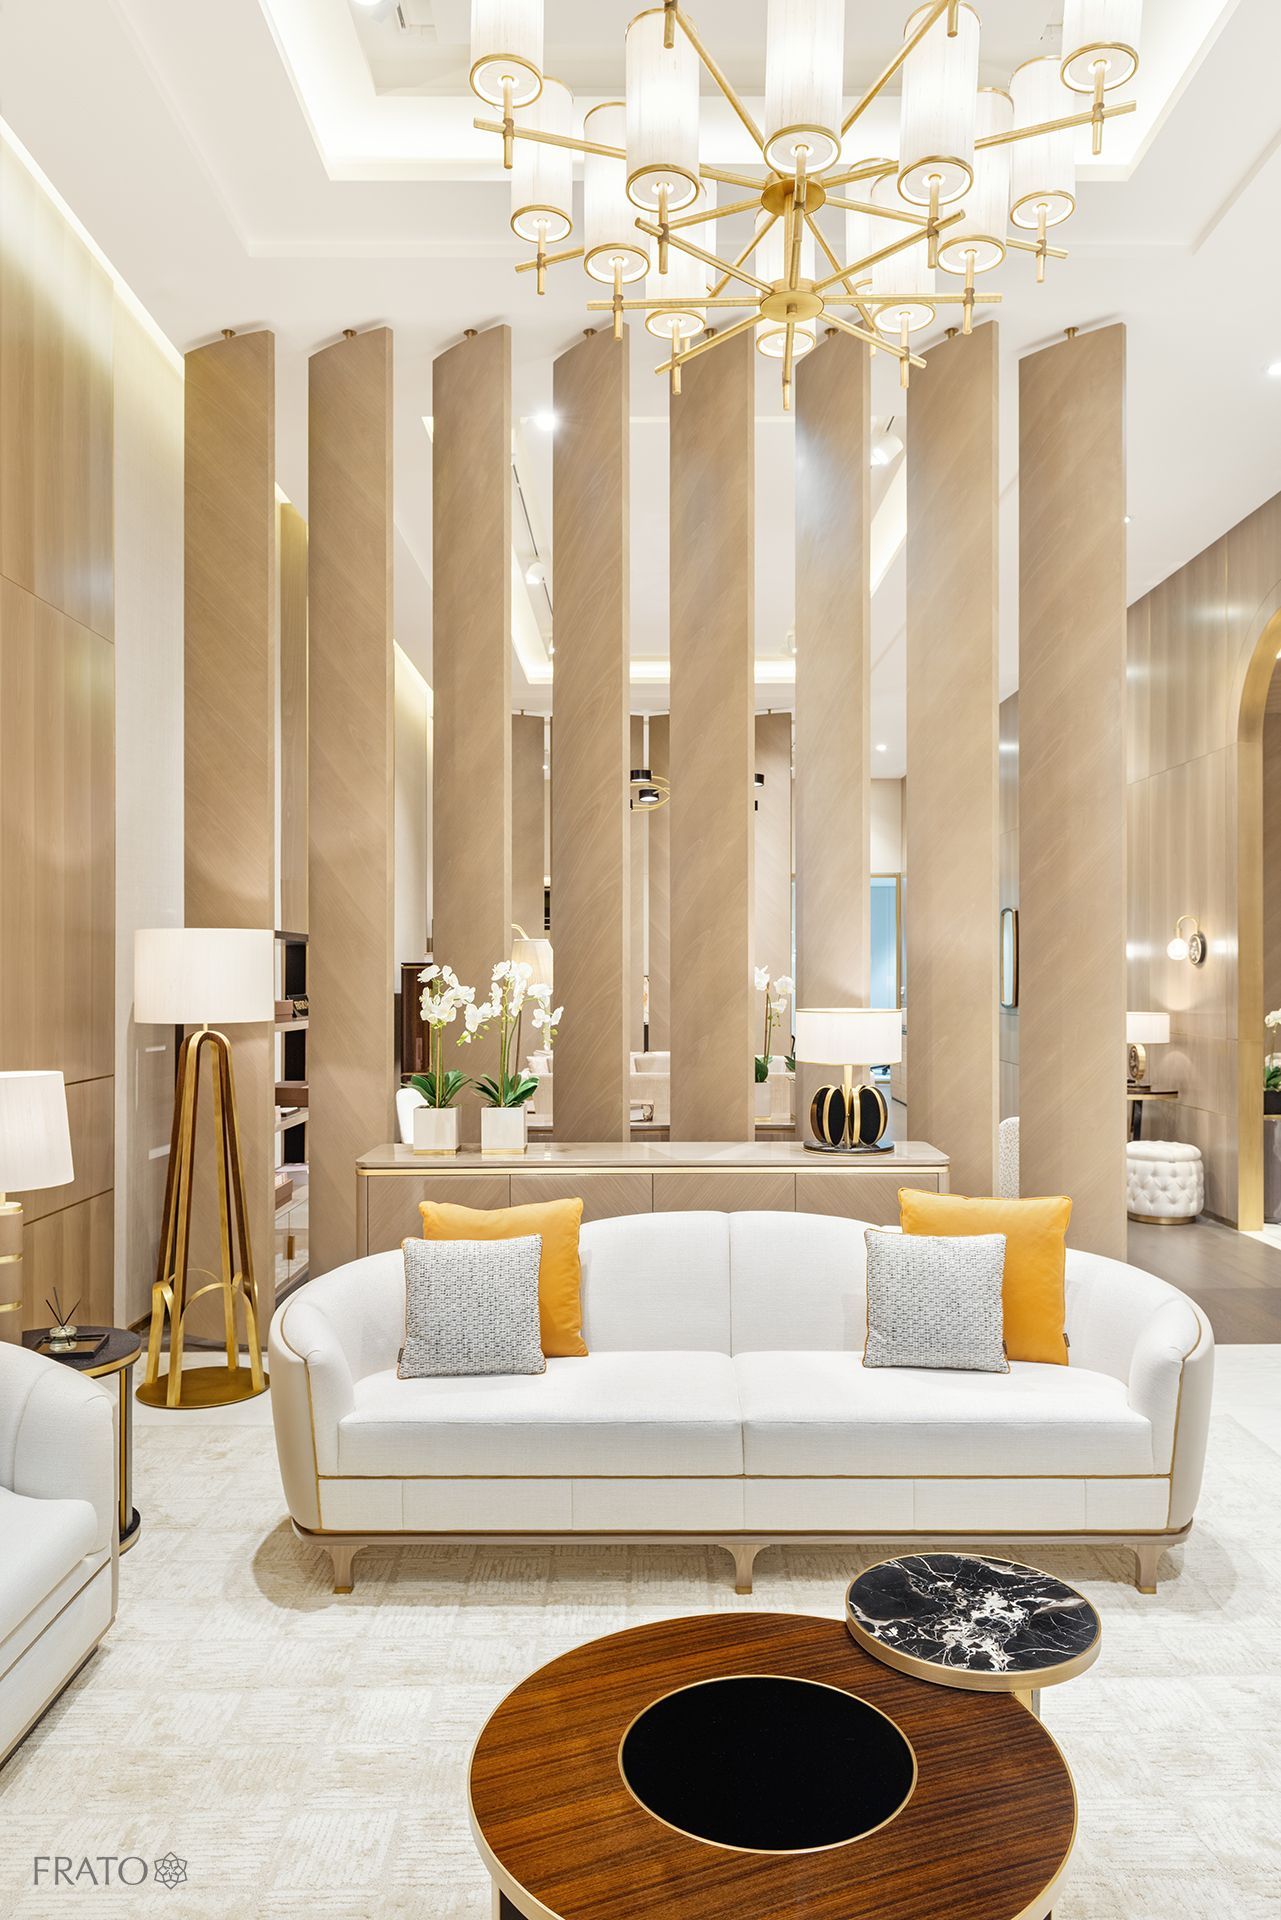 to Frato Interiors NEW FLAGSHIP STORE at The Dubai